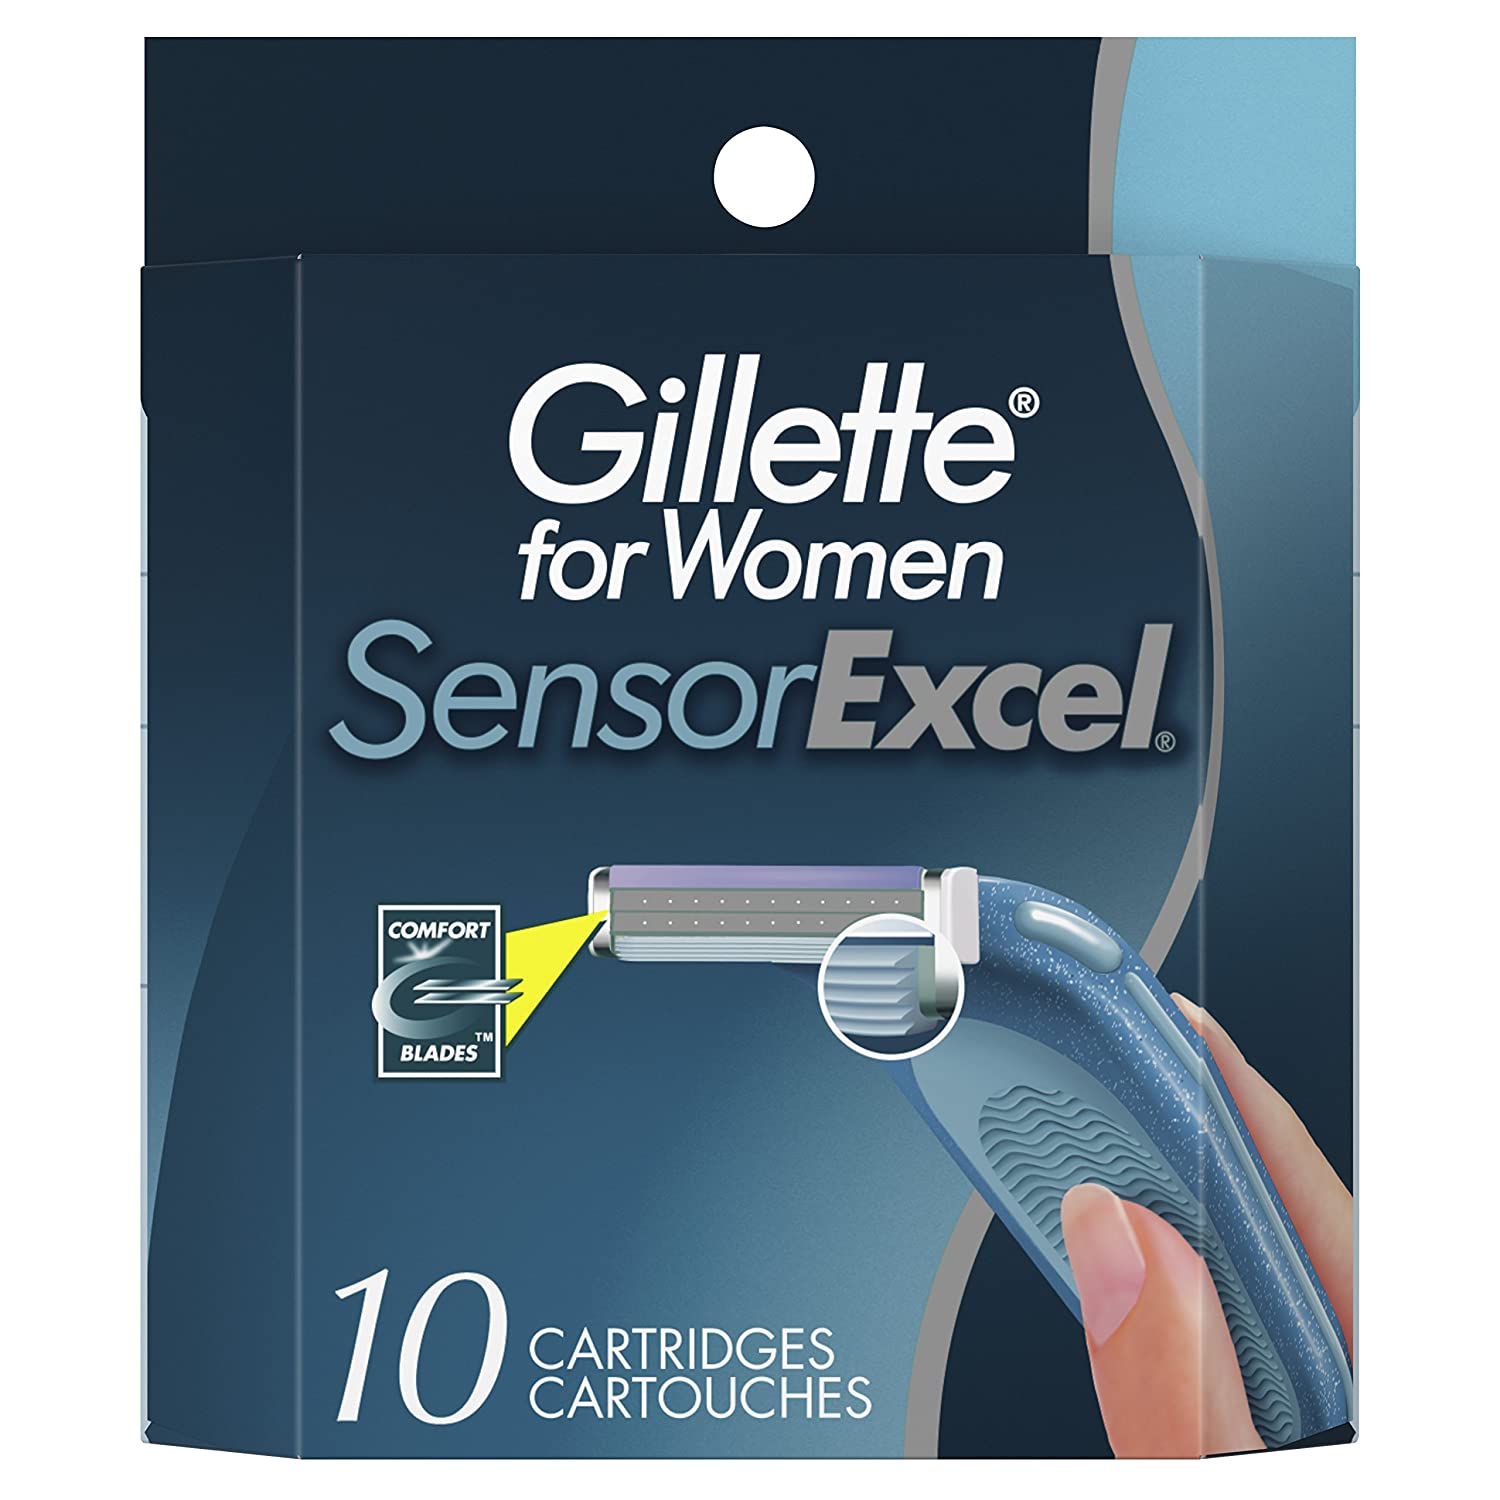 Gillette SensorExcel Cartridges for Women 10 Count NA